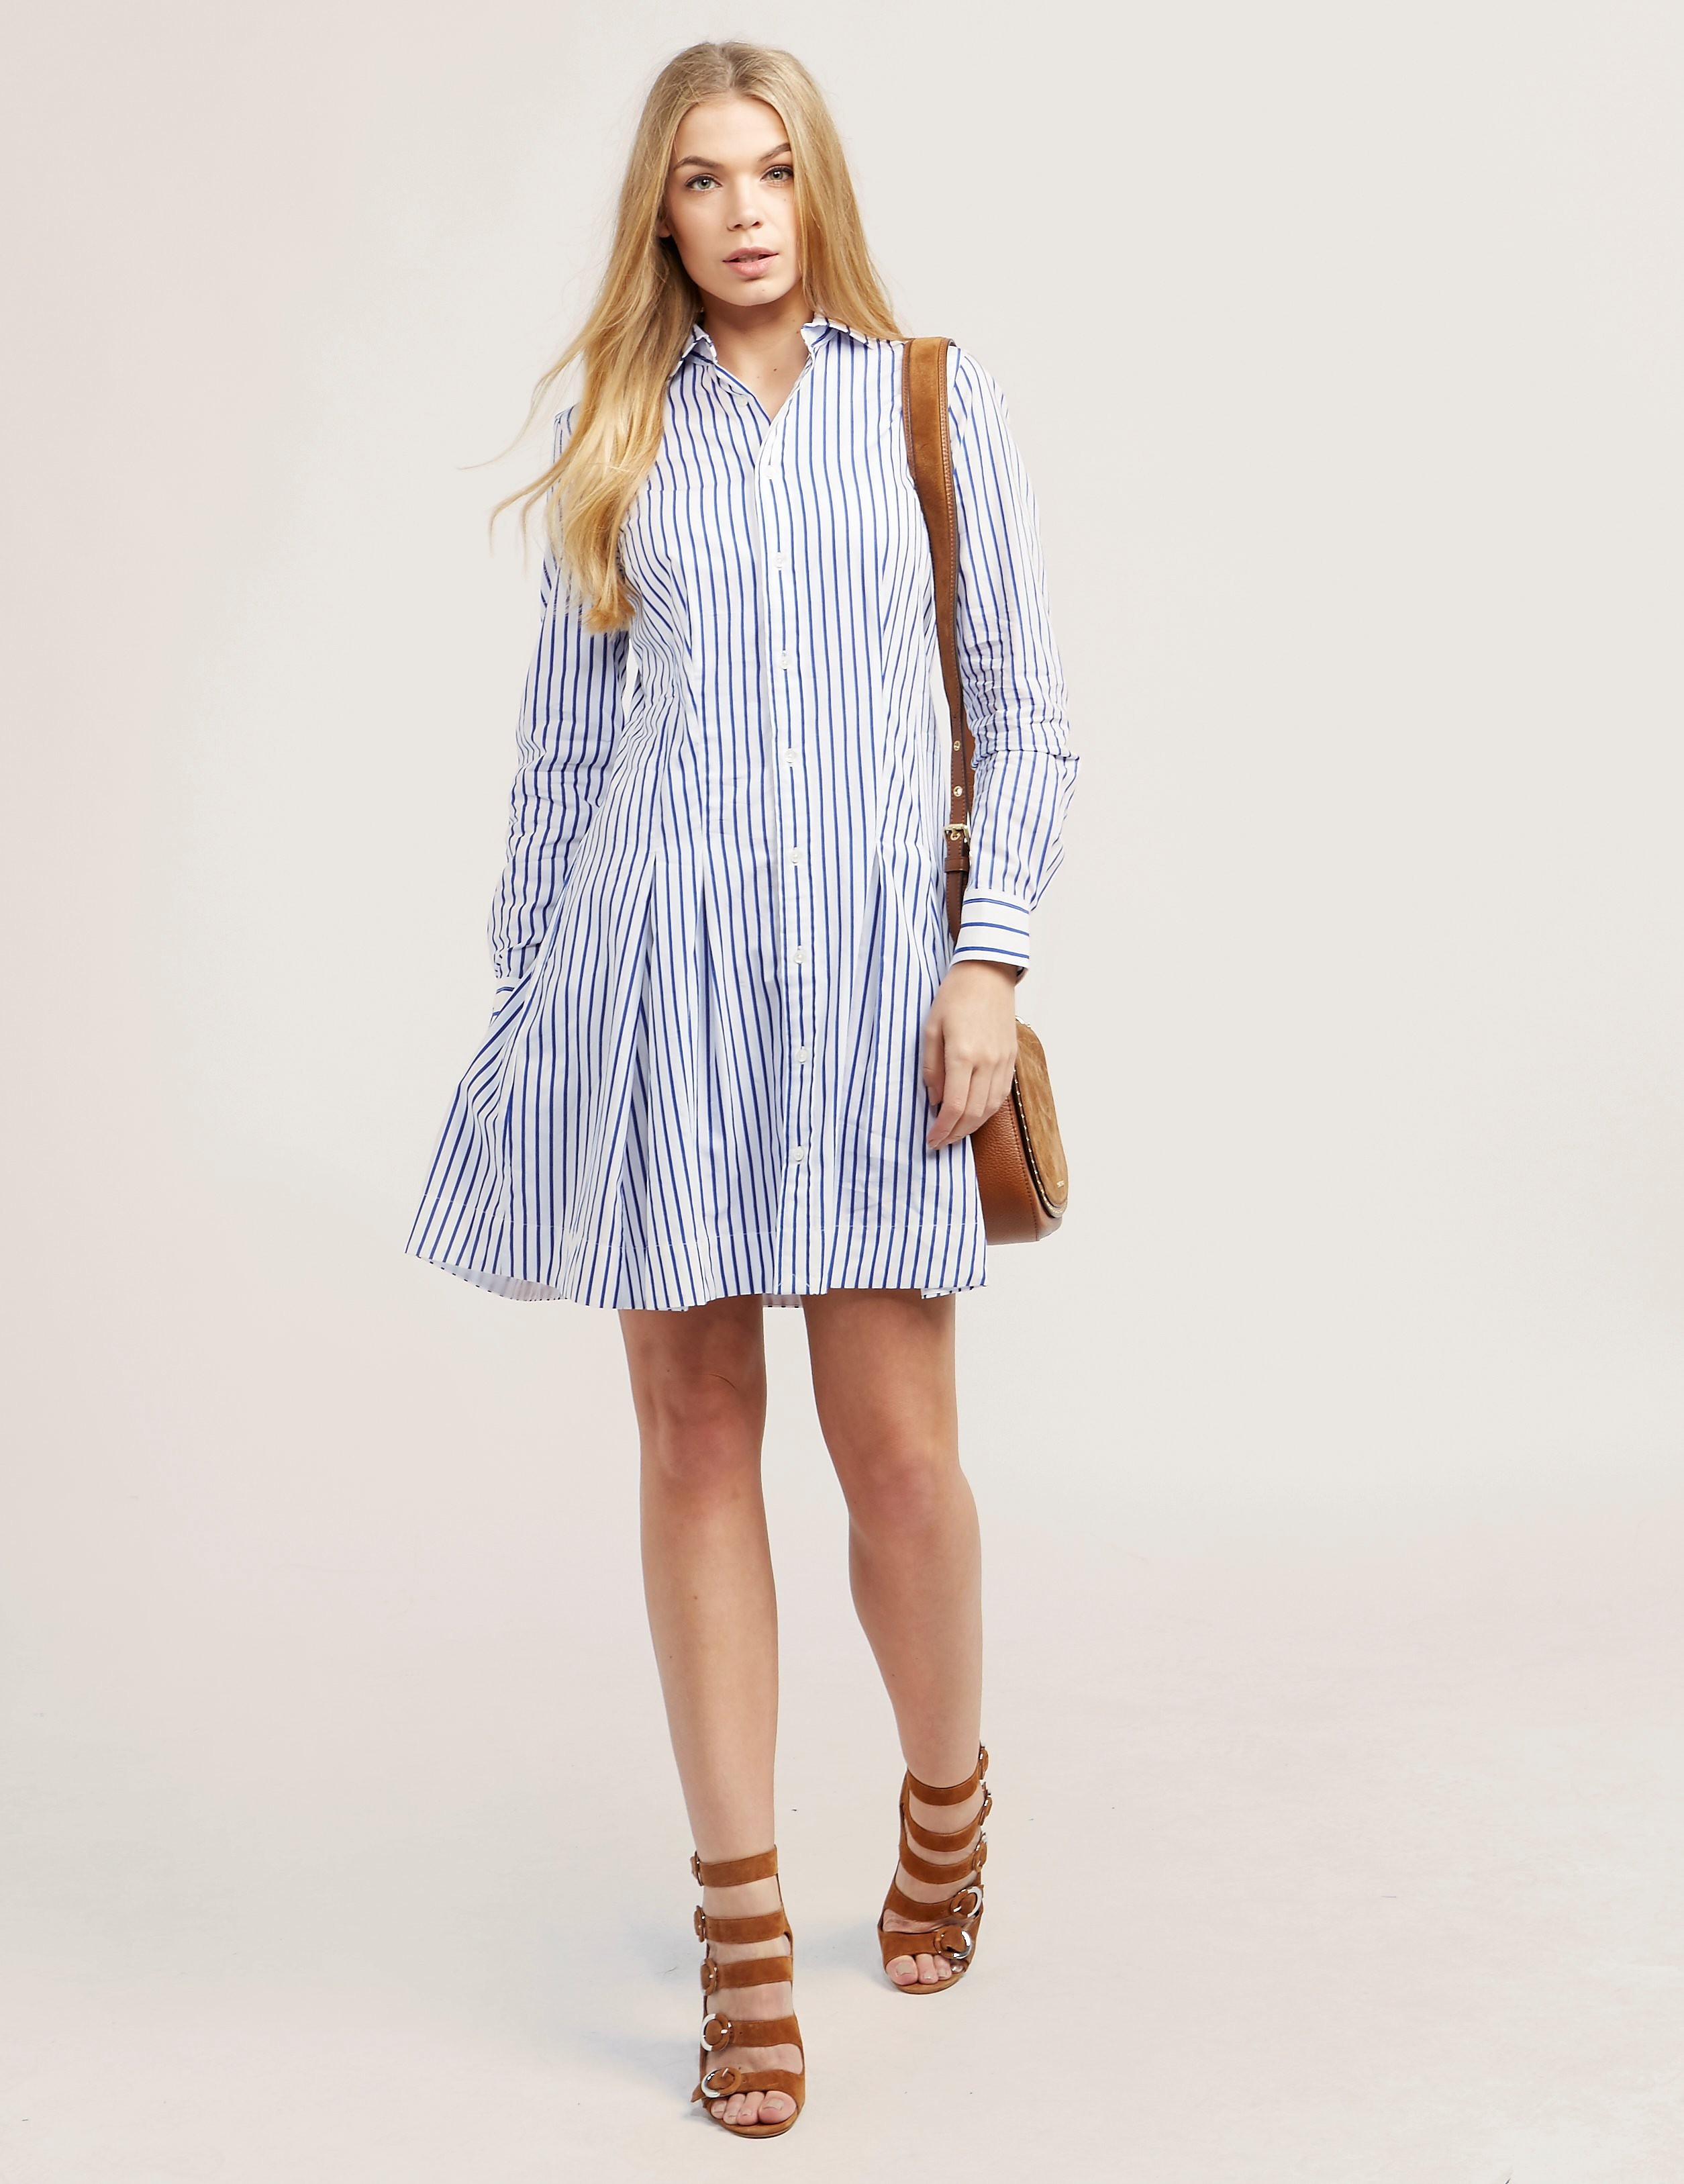 Polo Ralph Lauren Pleated Poplin Dress